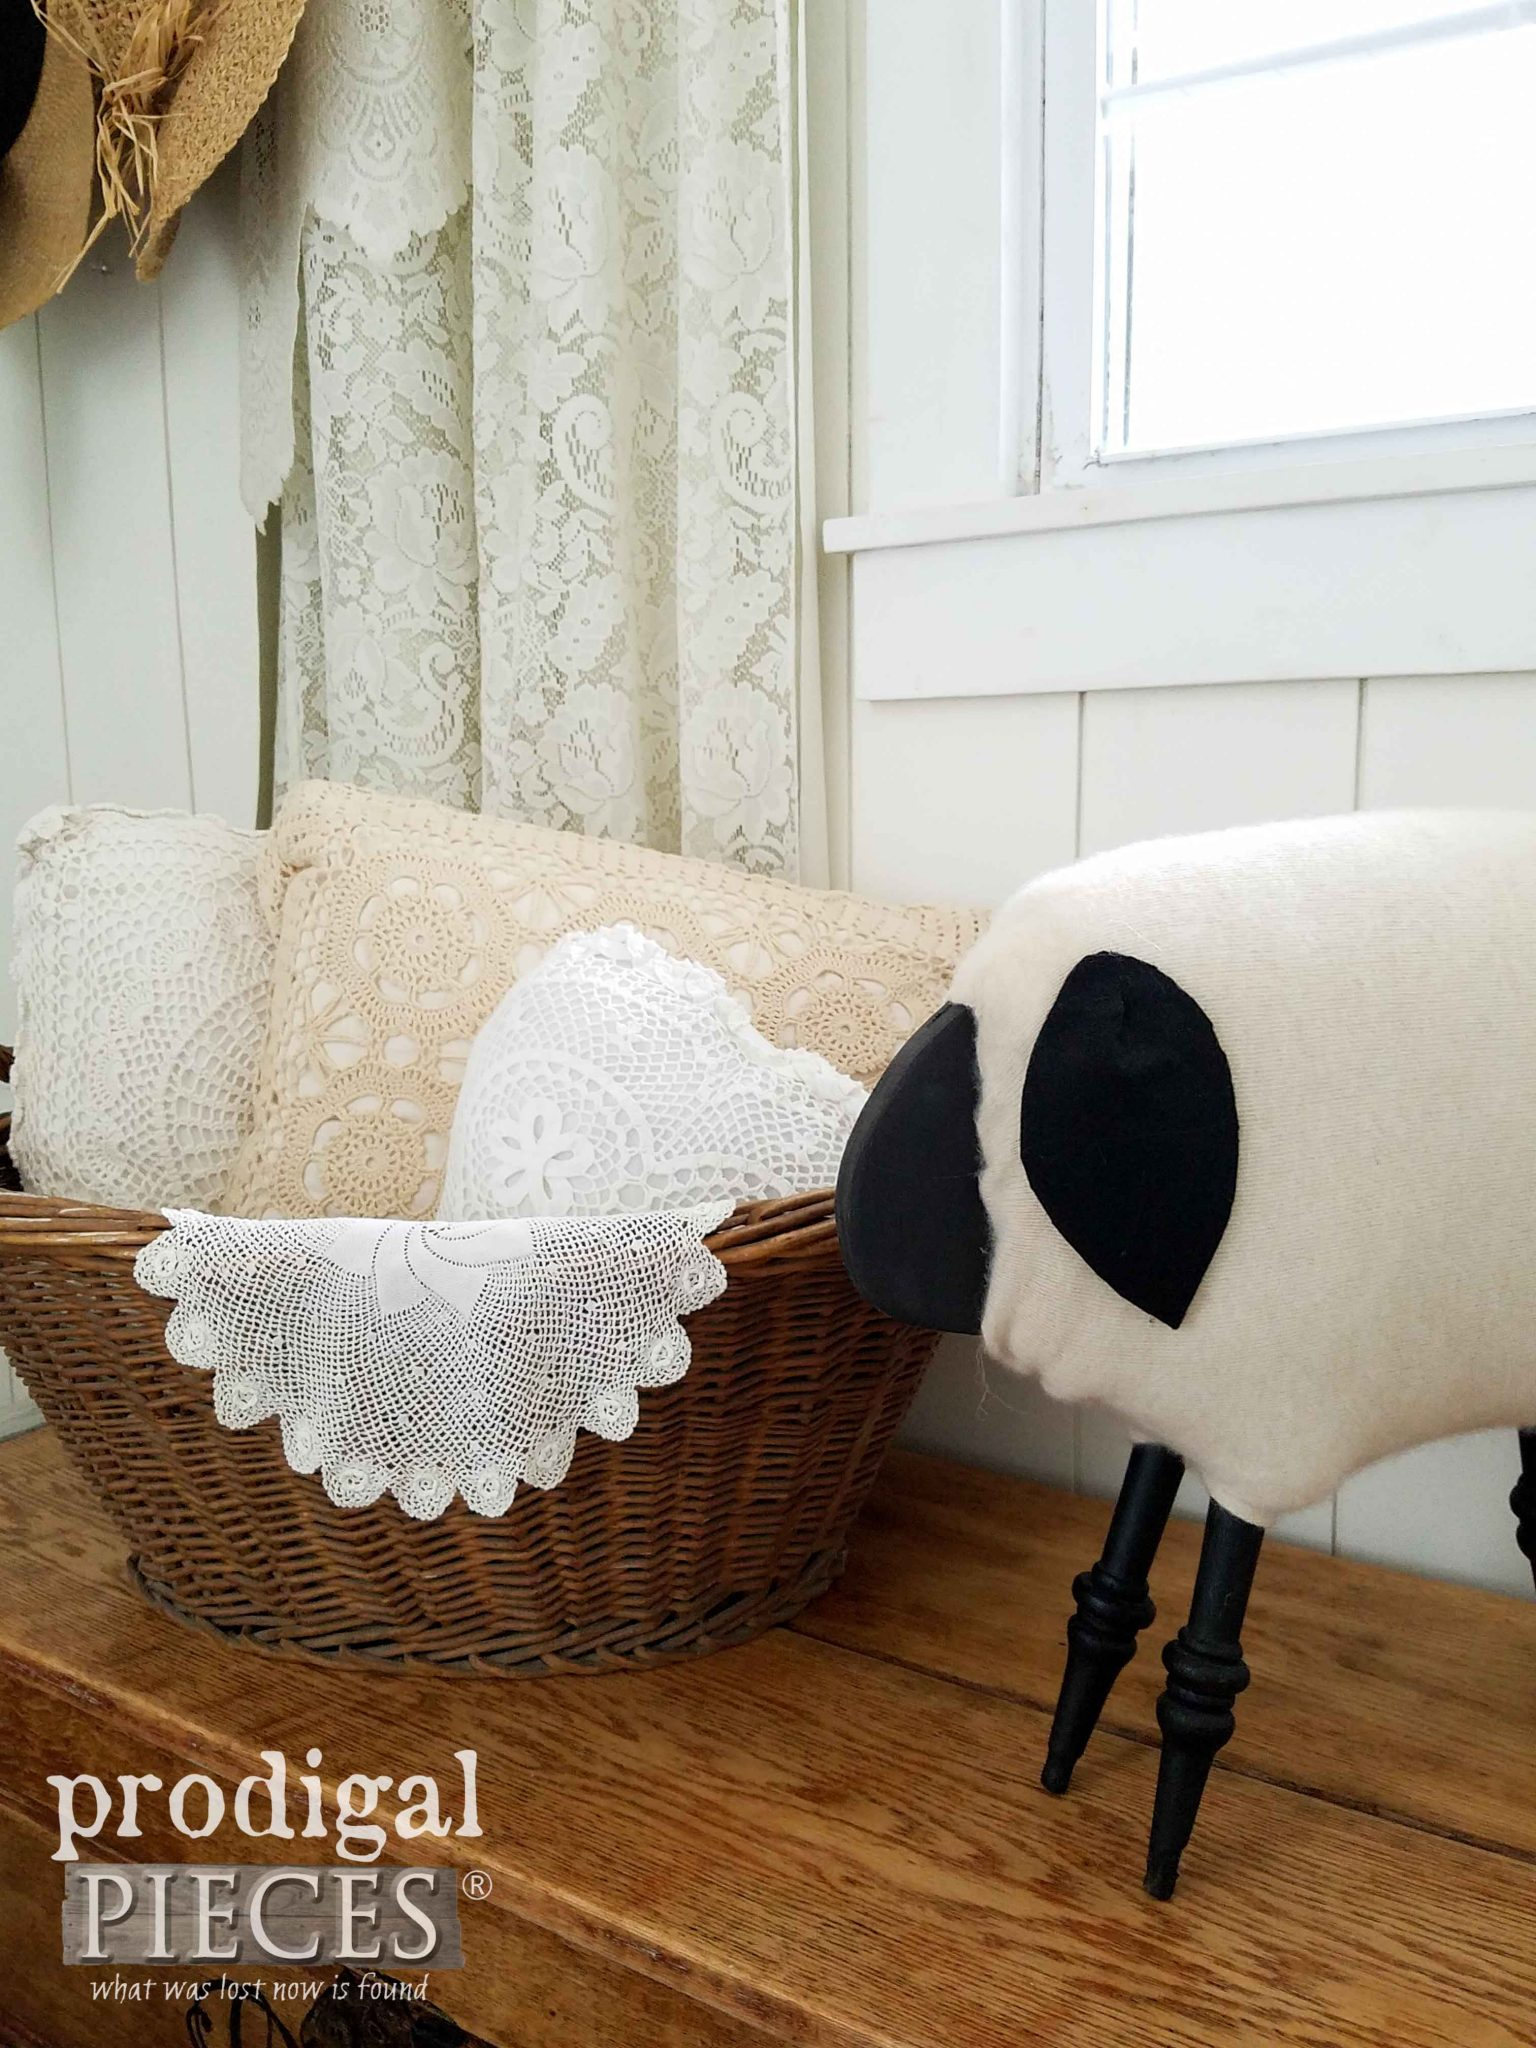 Farmhouse Vignette with Sheep and Laundry Basket by Prodigal Pieces | prodigalpieces.com